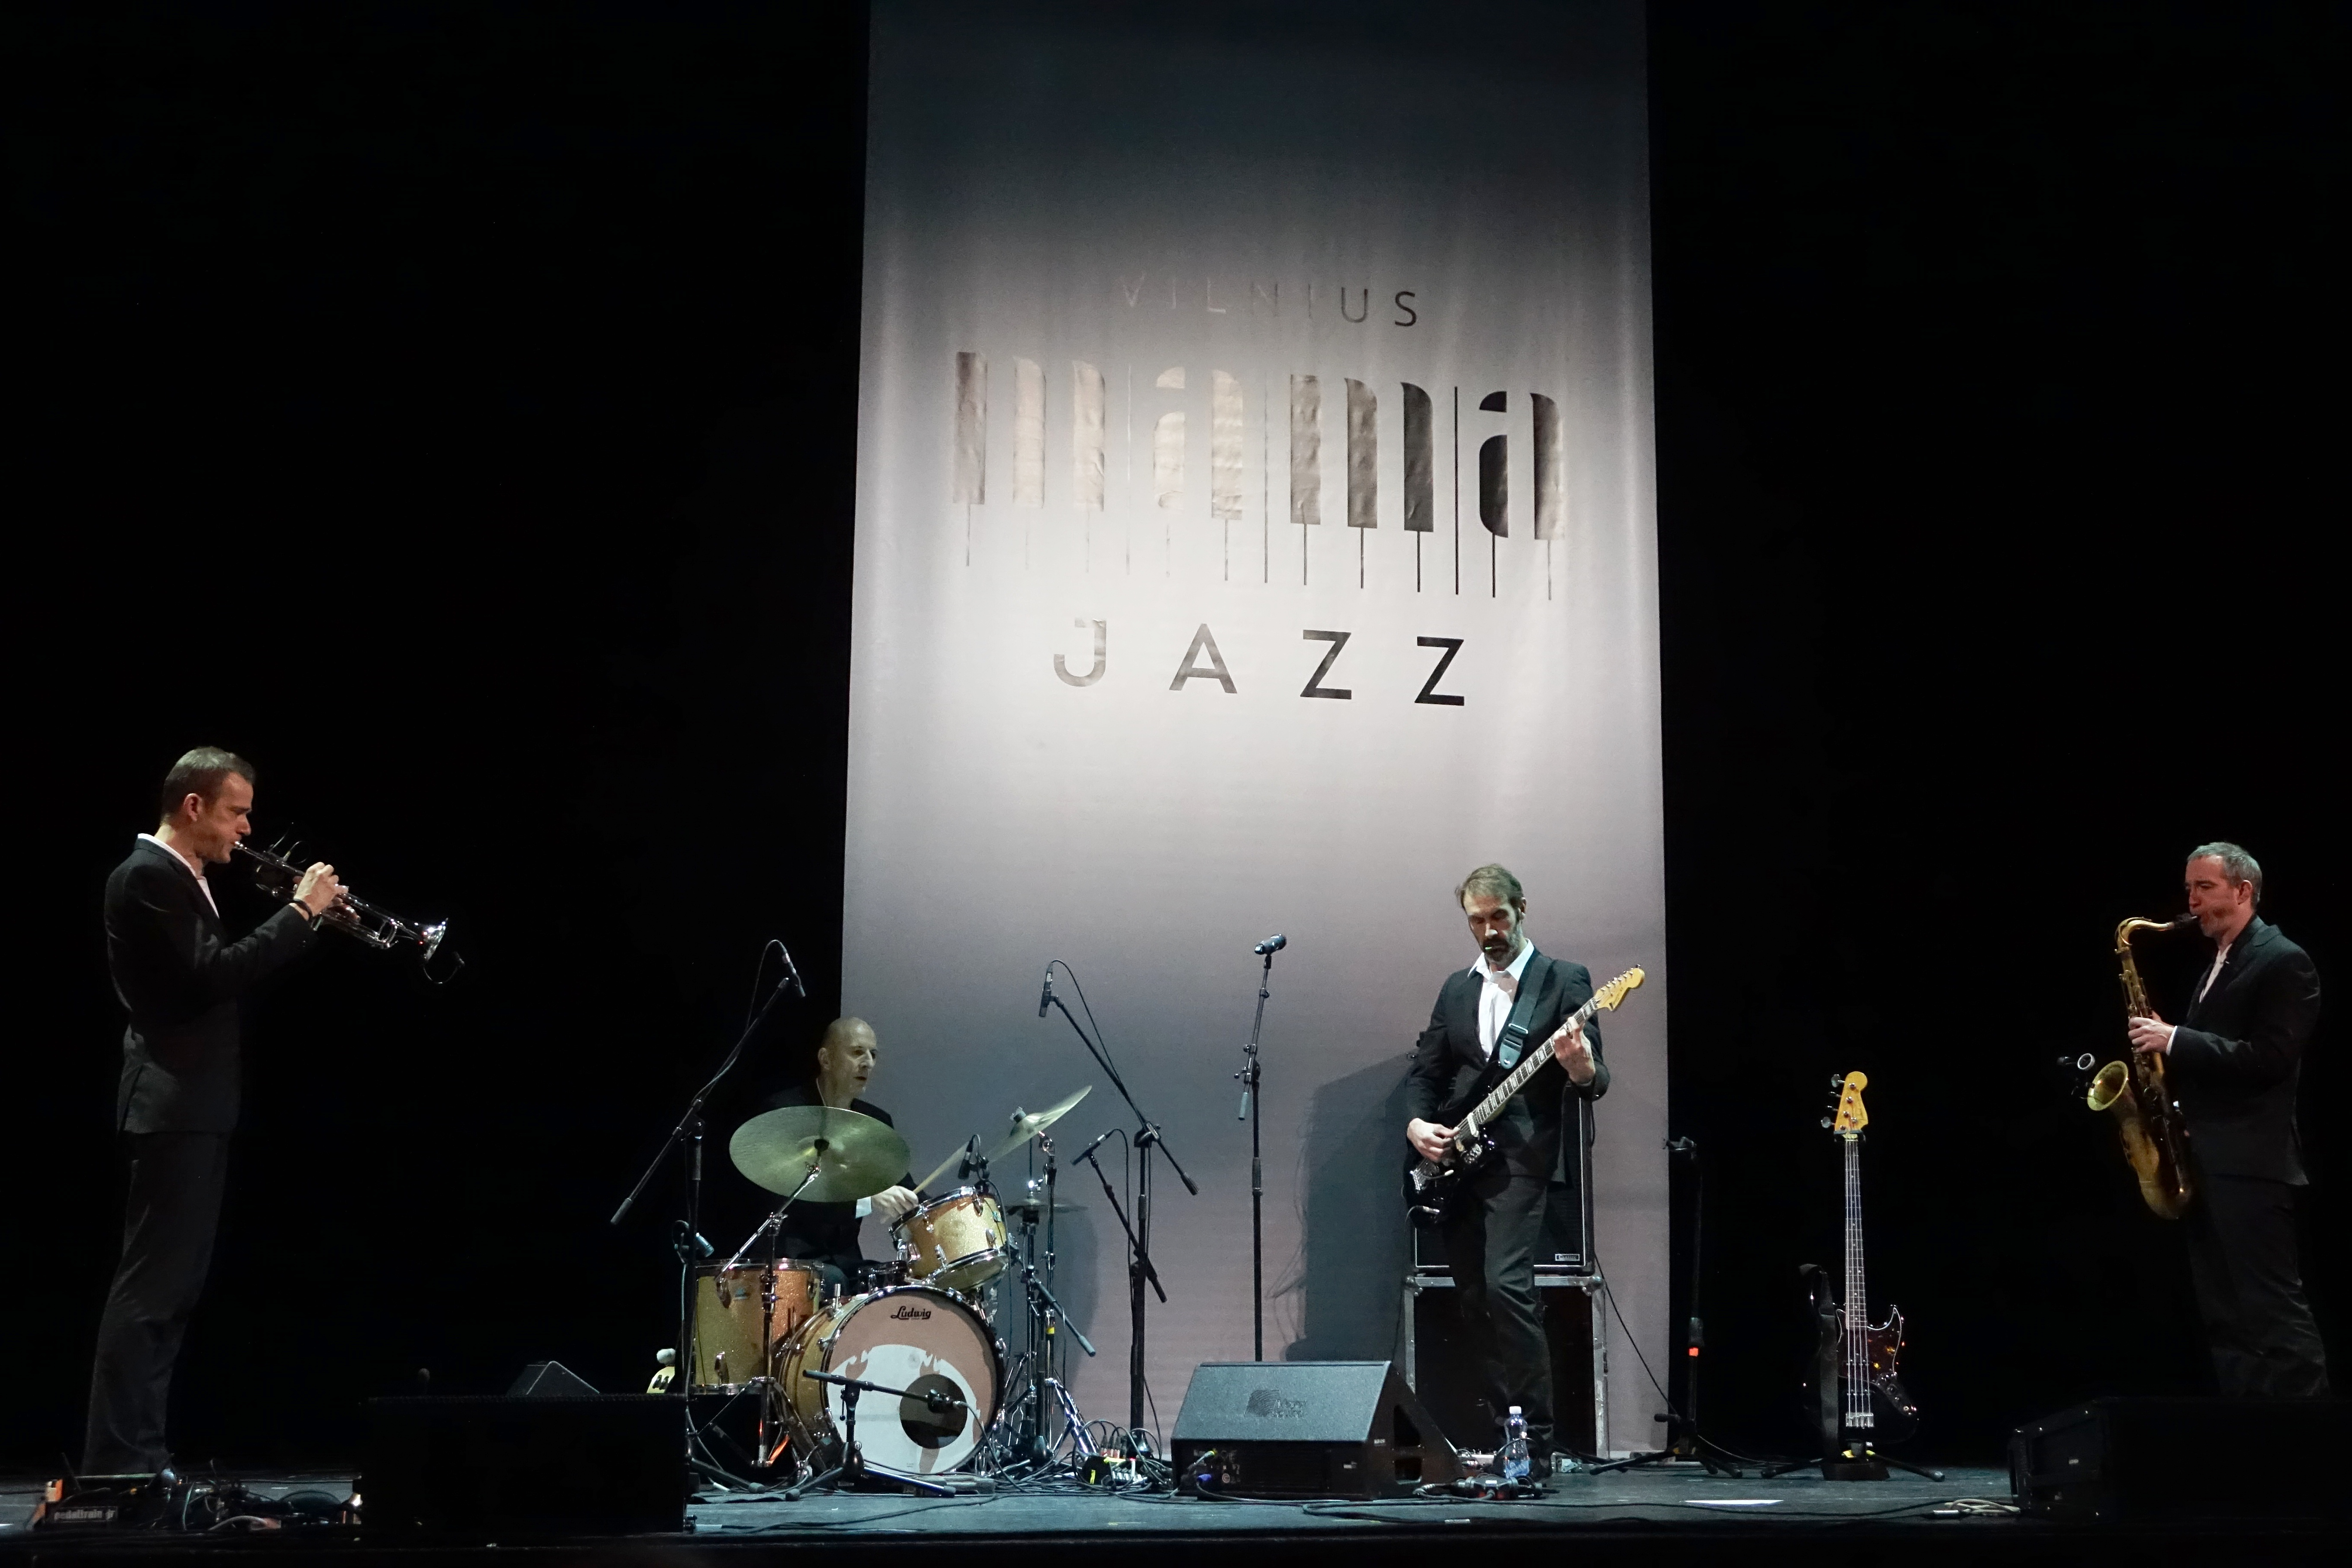 Get The Blessing at the Vilnius Mama Jazz Festival in November 2017